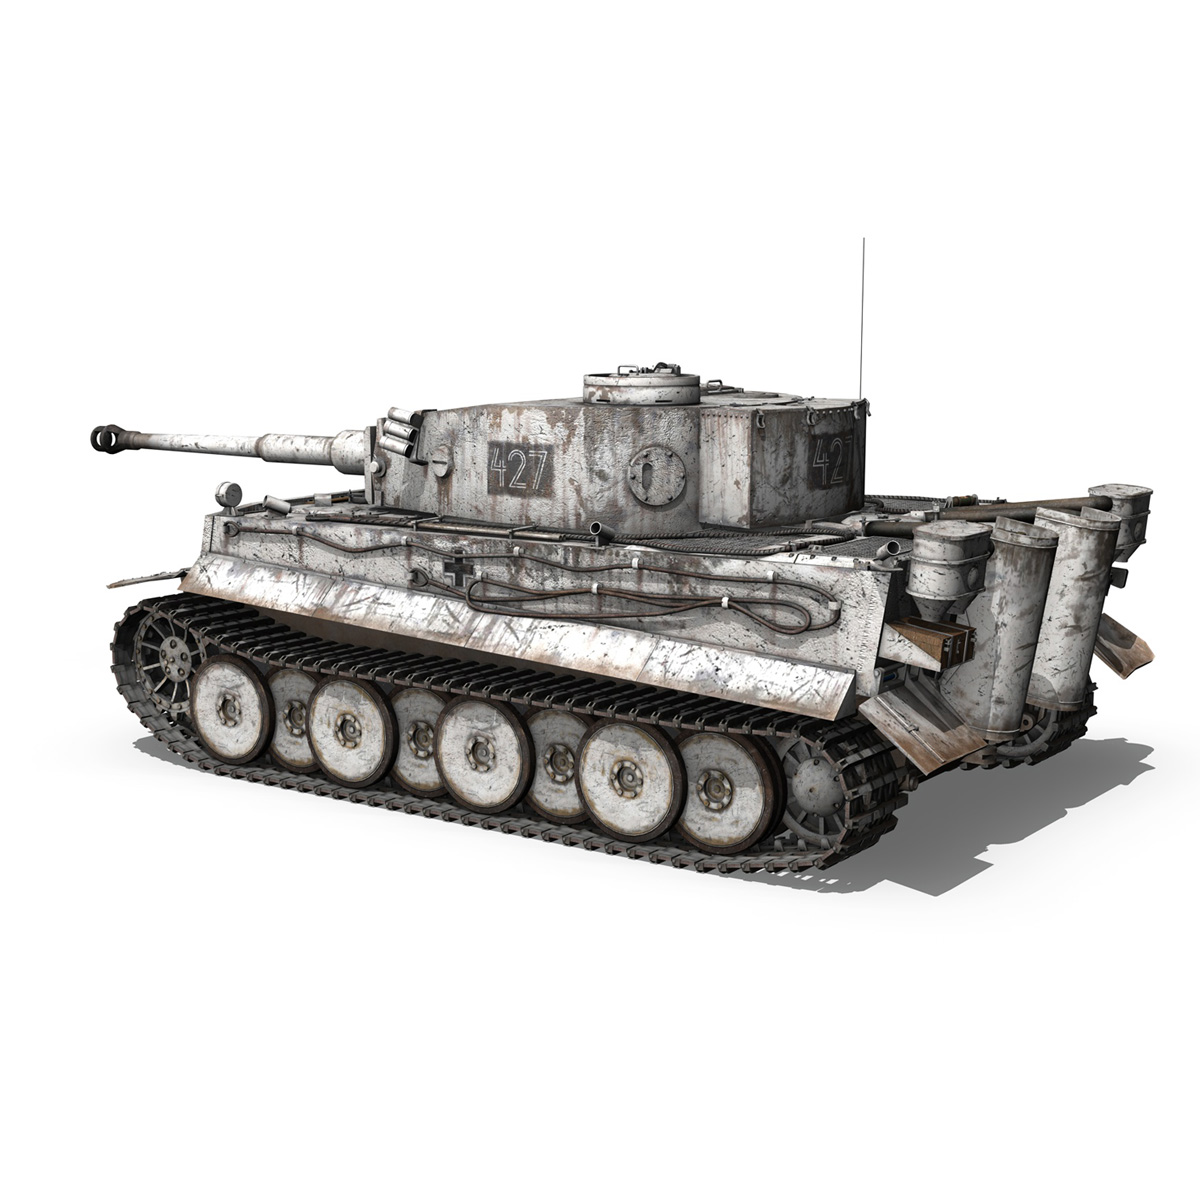 Panzer VI - Tiger - 427 - Early Production 3d model 3ds c4d lwo lws lw obj 273738